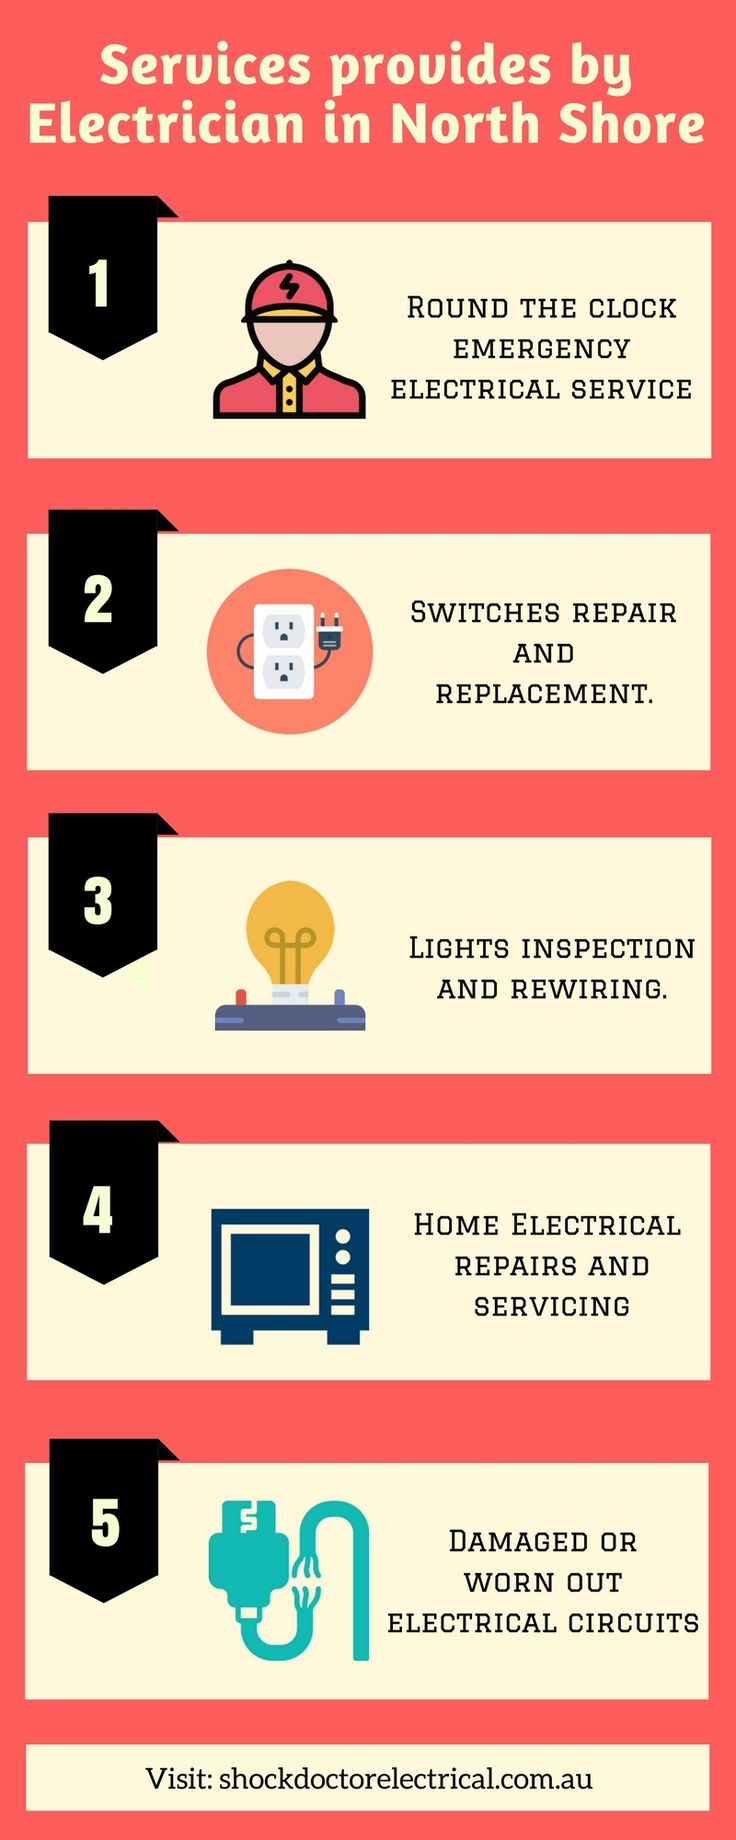 Get in touch with the experts electrician of North Shore for timely and reliable residential electrical services.